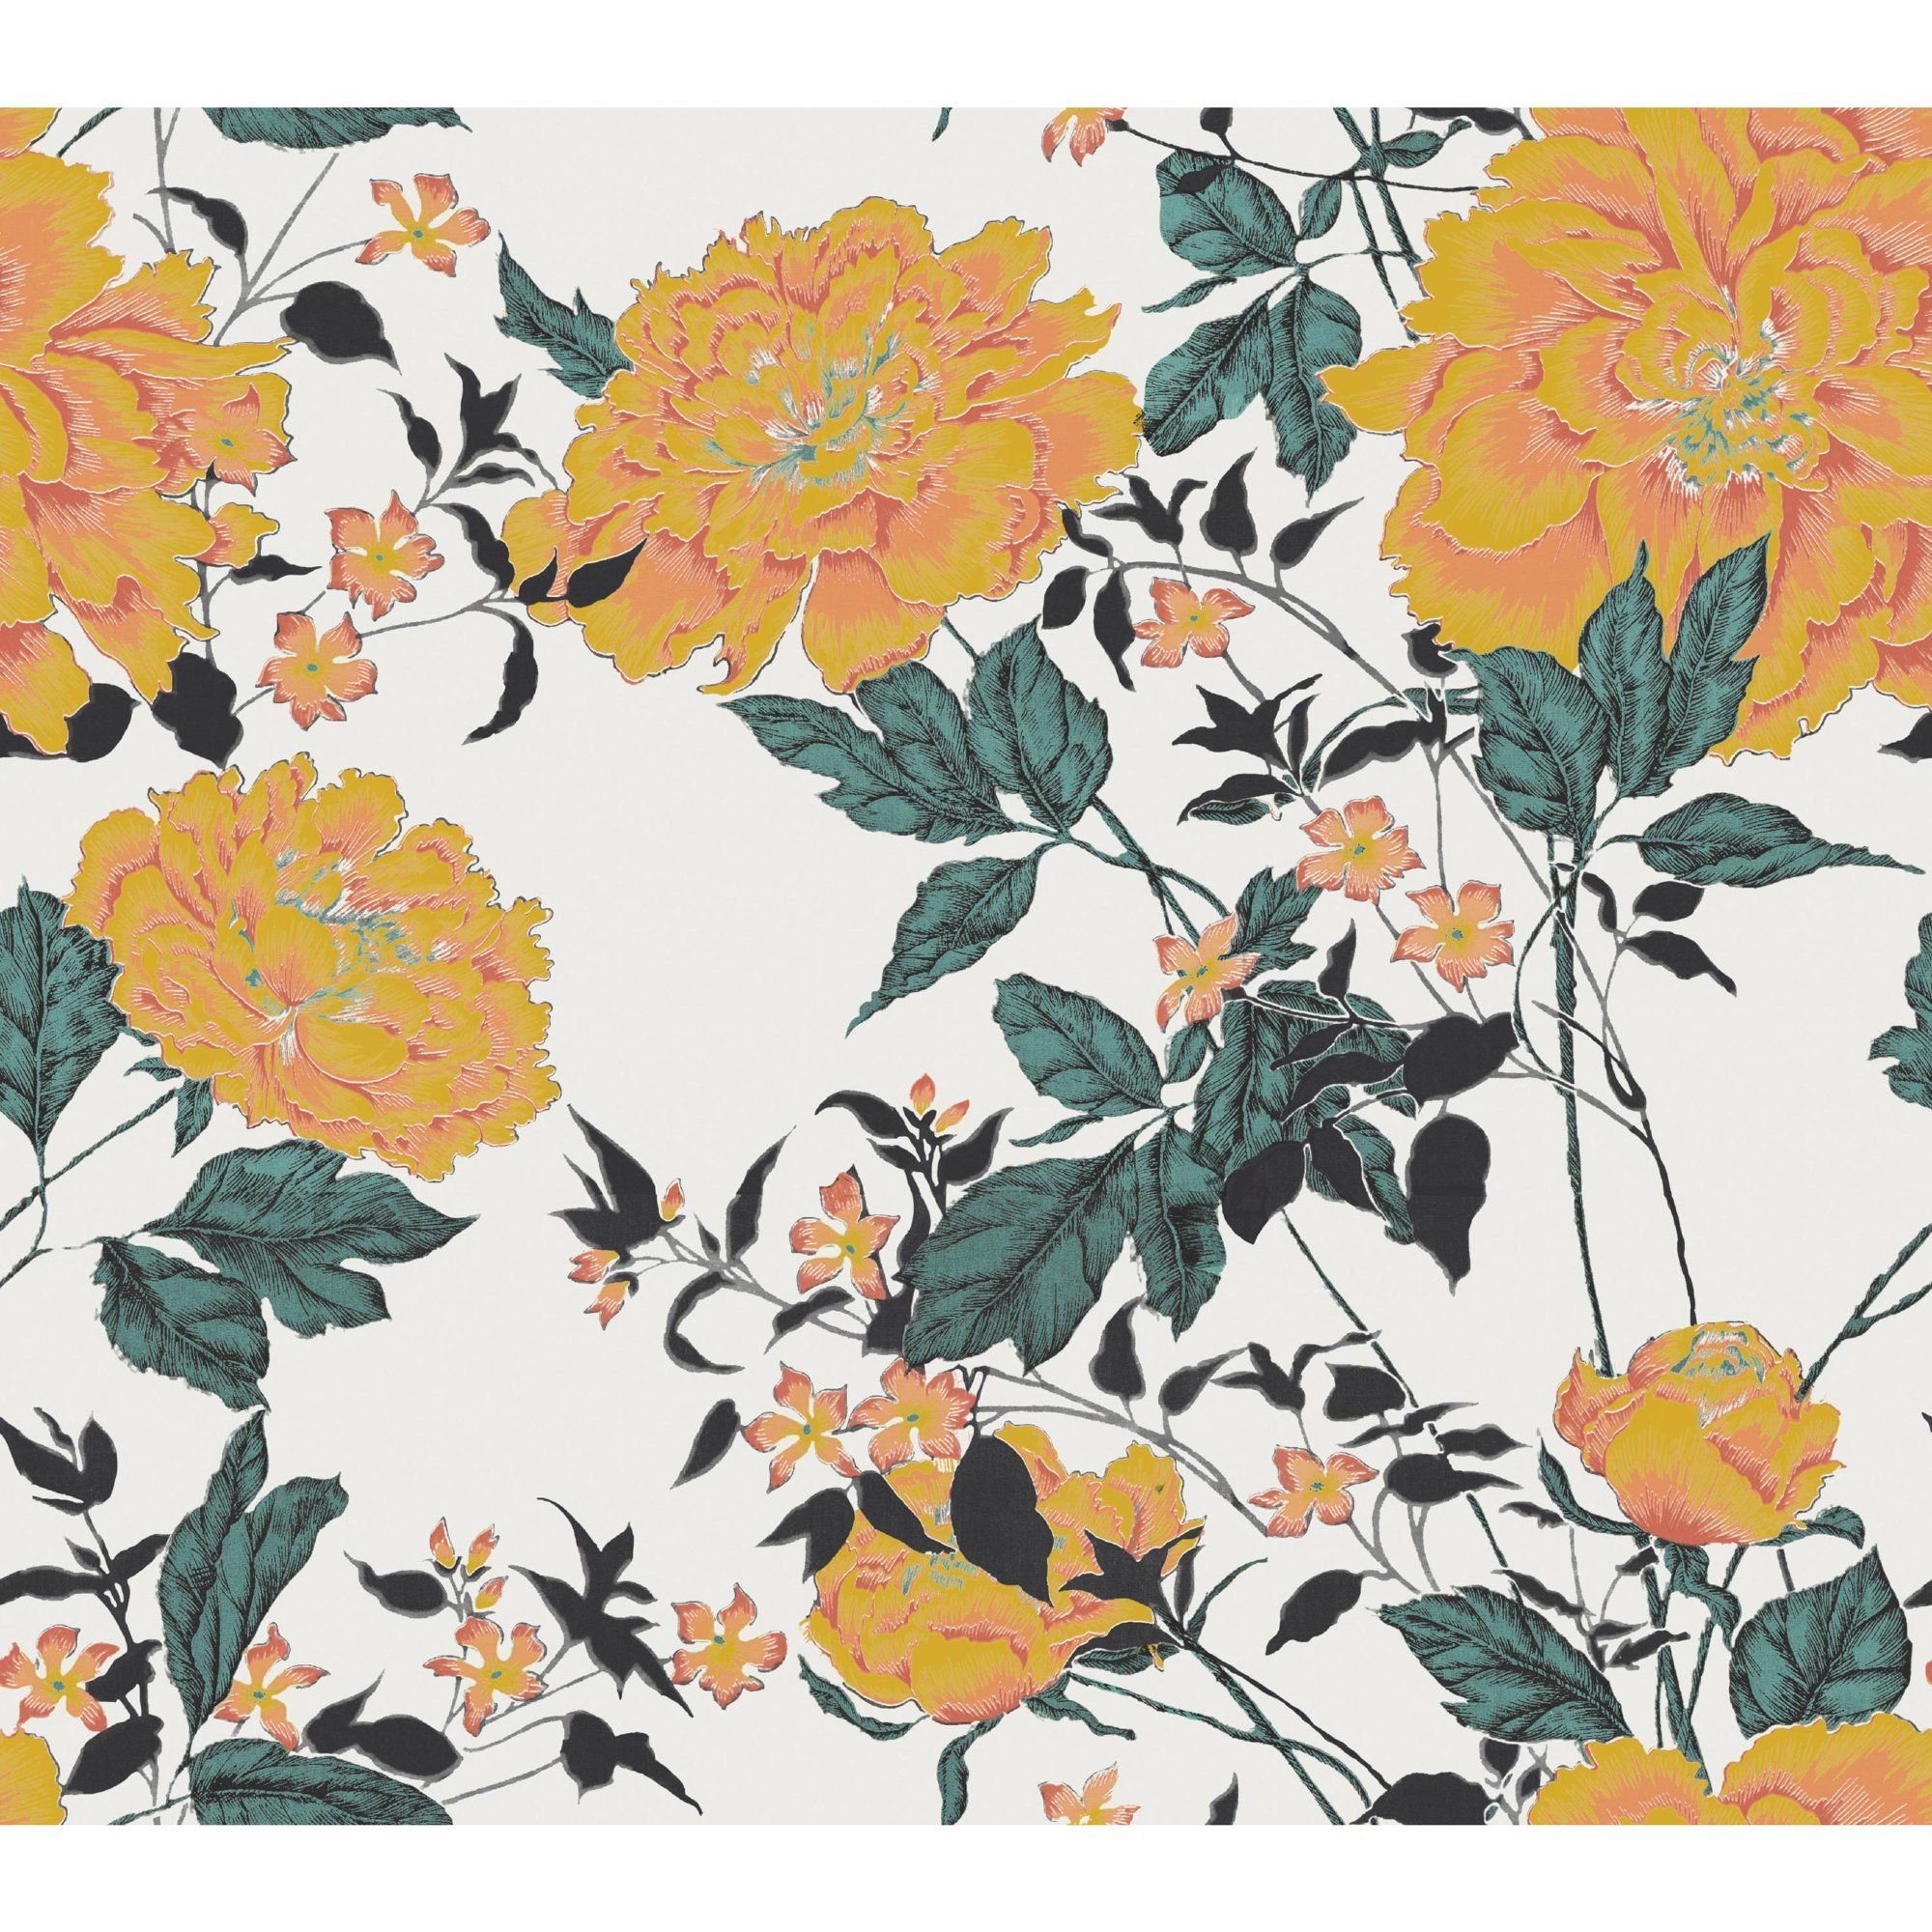 Yellow Vintage Floral Peel And Stick Wallpaper By Drew Barrymore Flower Home Walmart Com Peel And Stick Wallpaper Wallpaper Vintage Floral